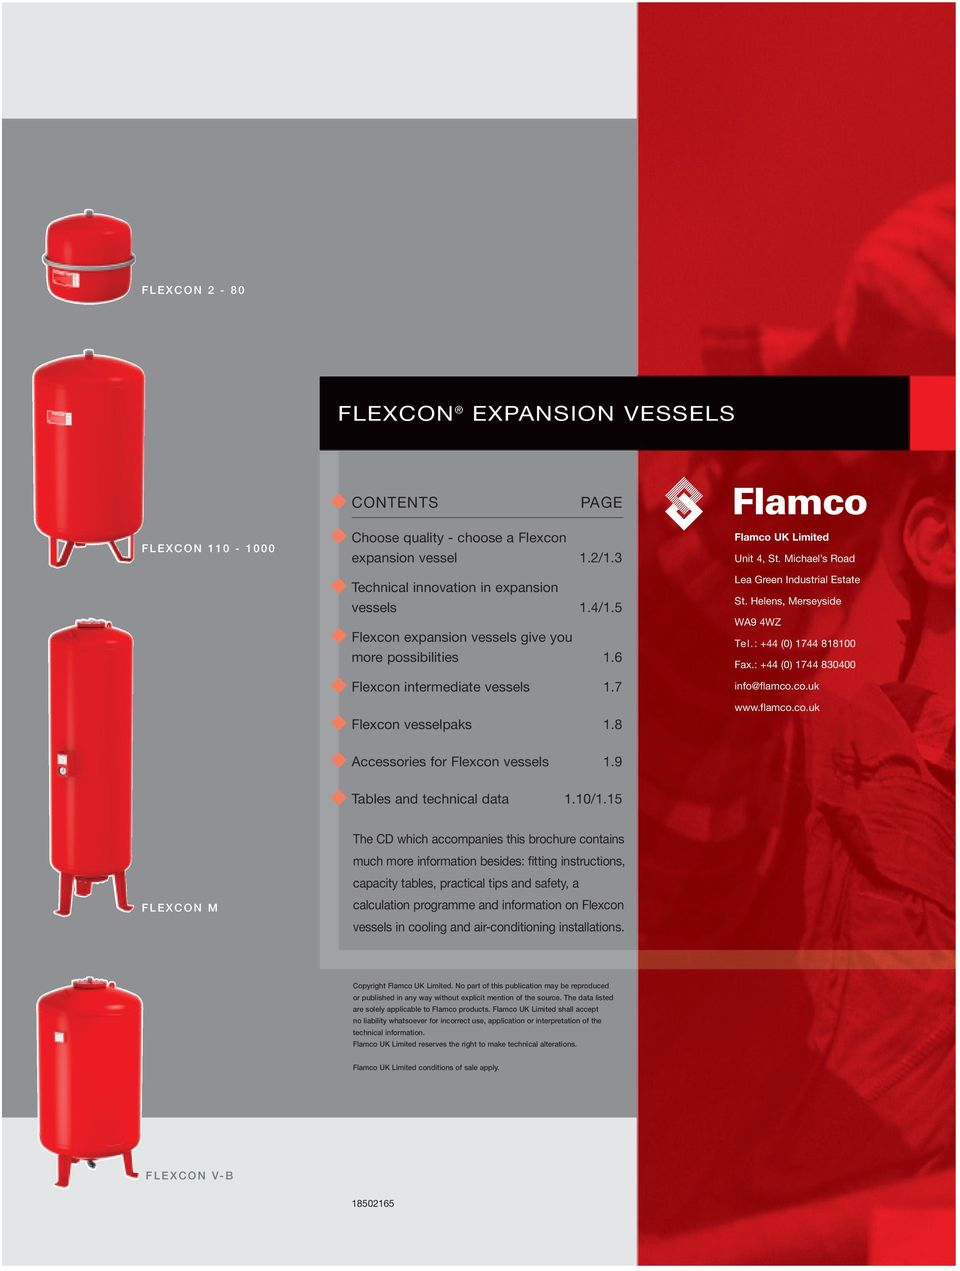 Helens, Merseyside WA9 4WZ Tel.: +44 (0) 1744 818100 Fax.: +44 (0) 1744 830400 info@flamco.co.uk www.flamco.co.uk Accessories for Flexcon vessels 1.9 Tables and technical data 1.10/1.